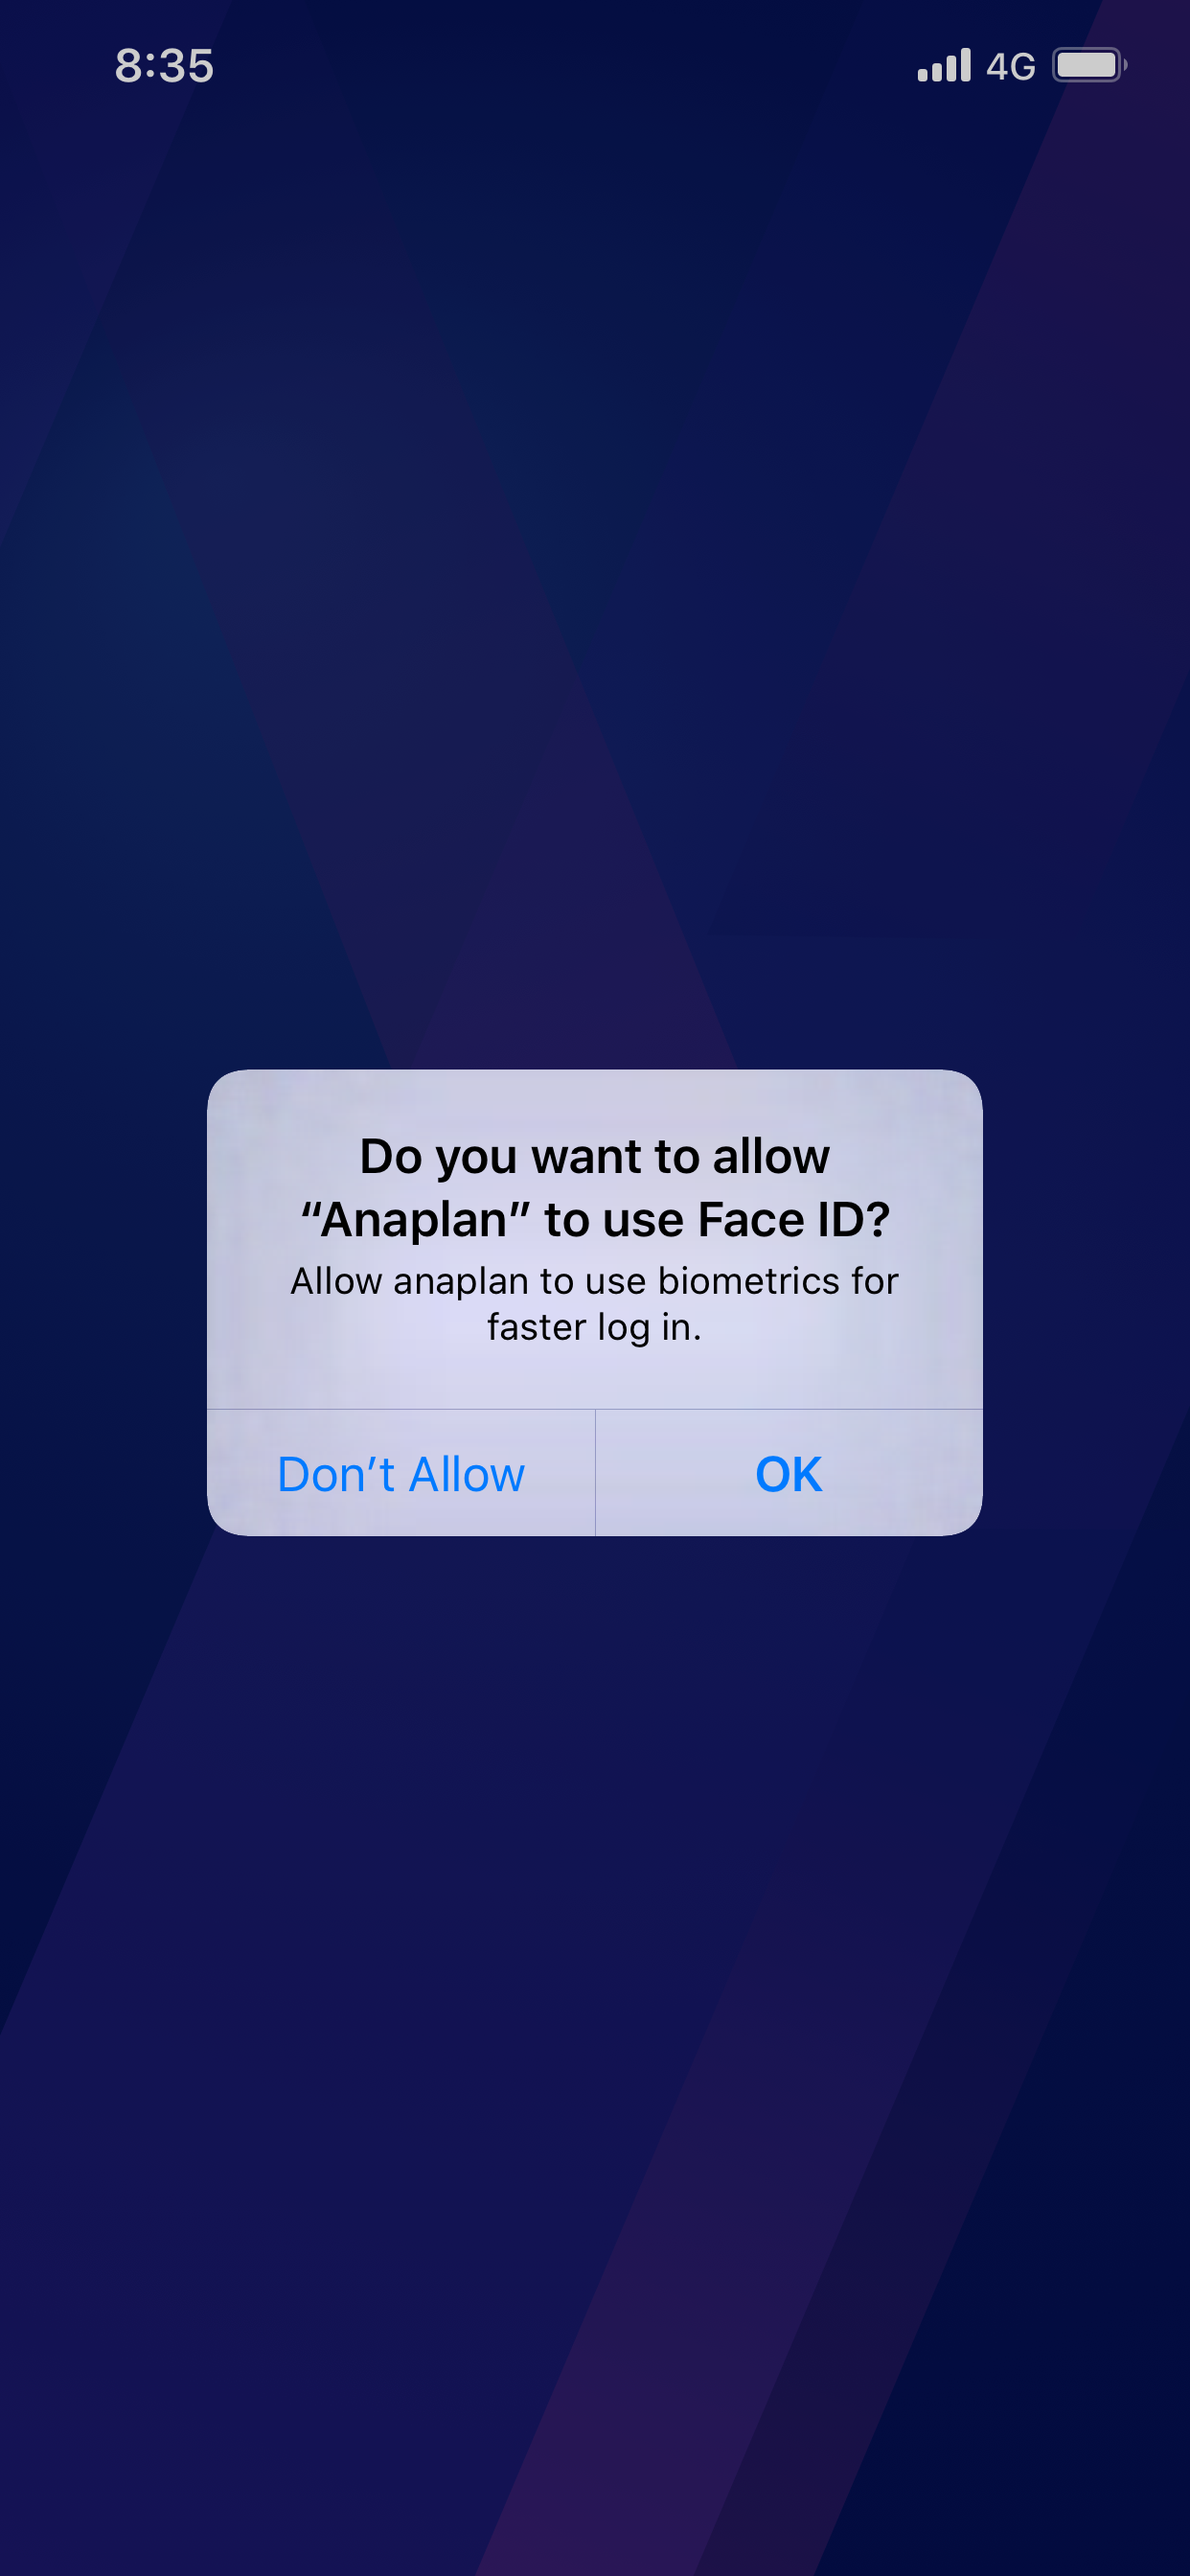 Enable Face ID dialog. Options are: Don't Allow and OK.